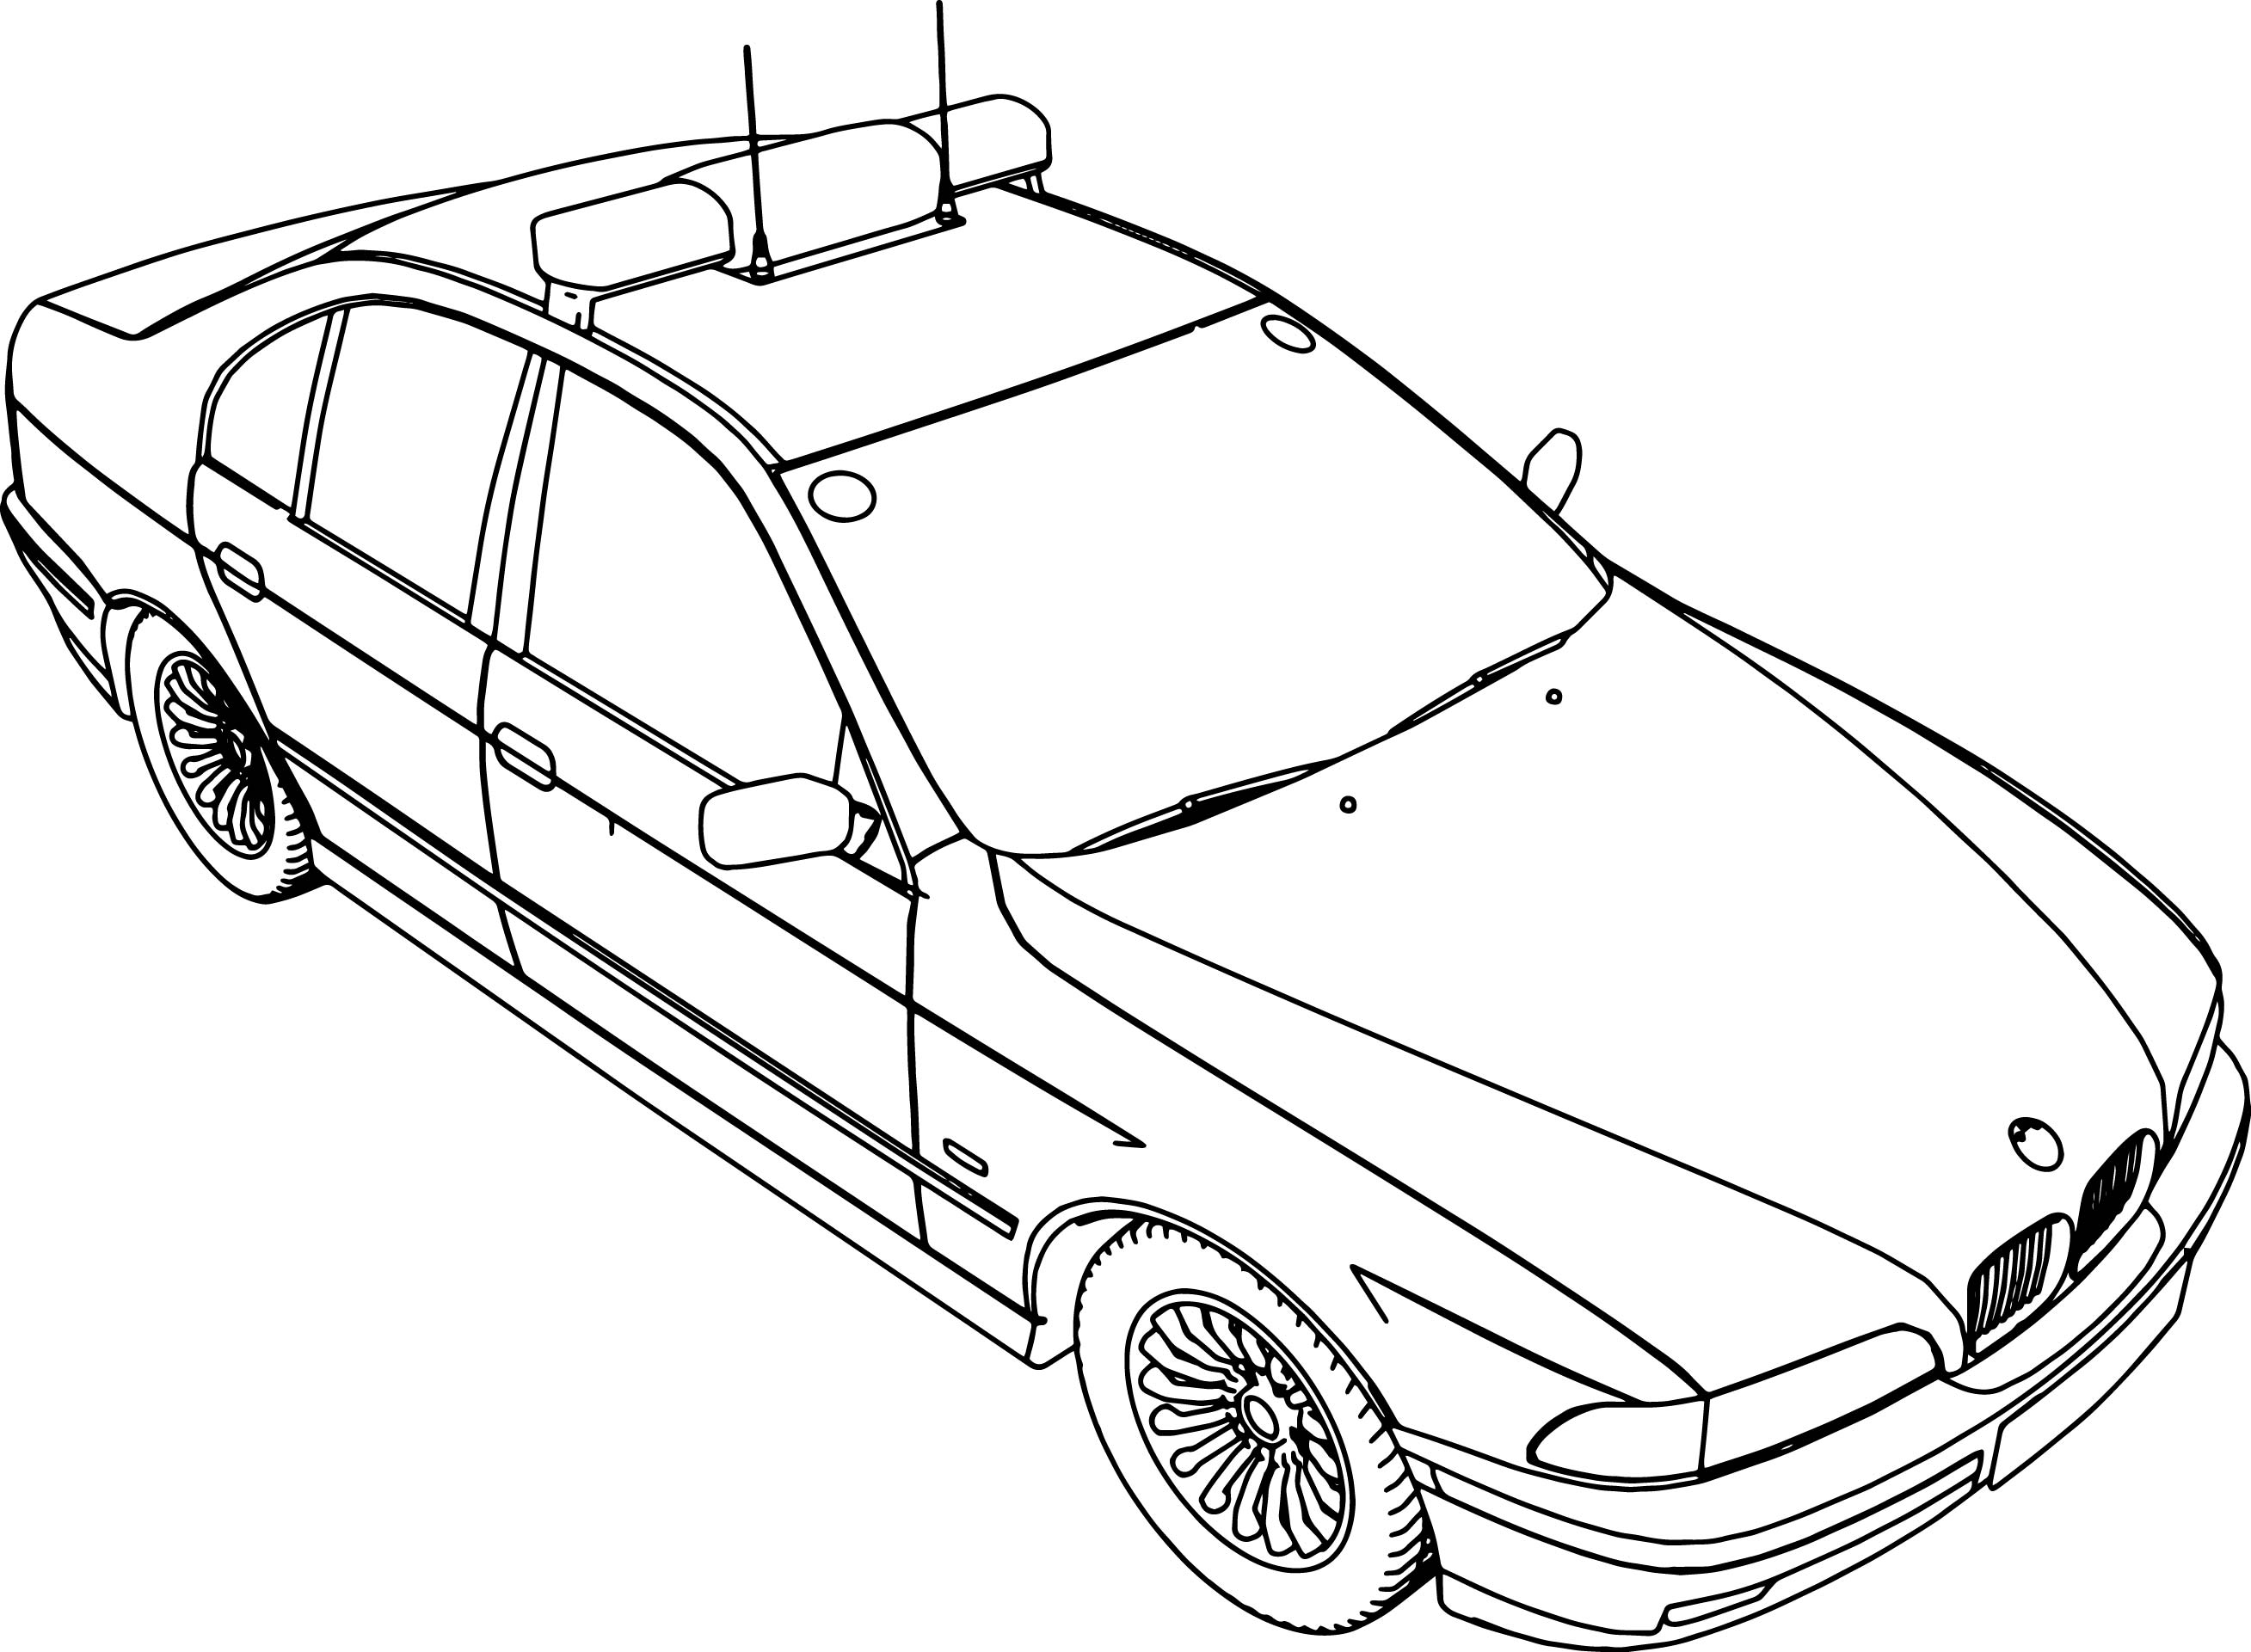 bmw 5 police car coloring page - Police Car Coloring Pages